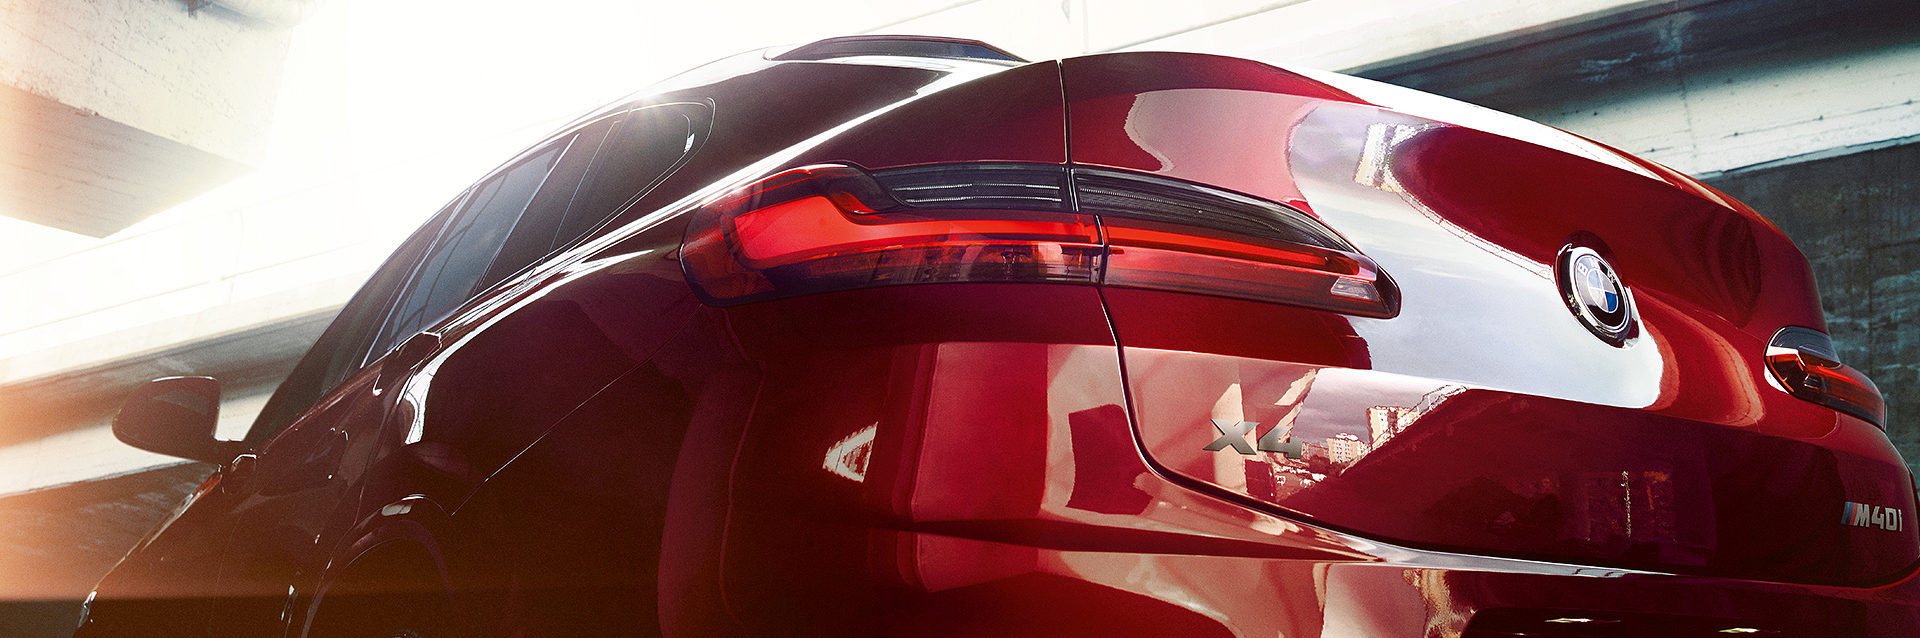 taillight shot of BMW X4